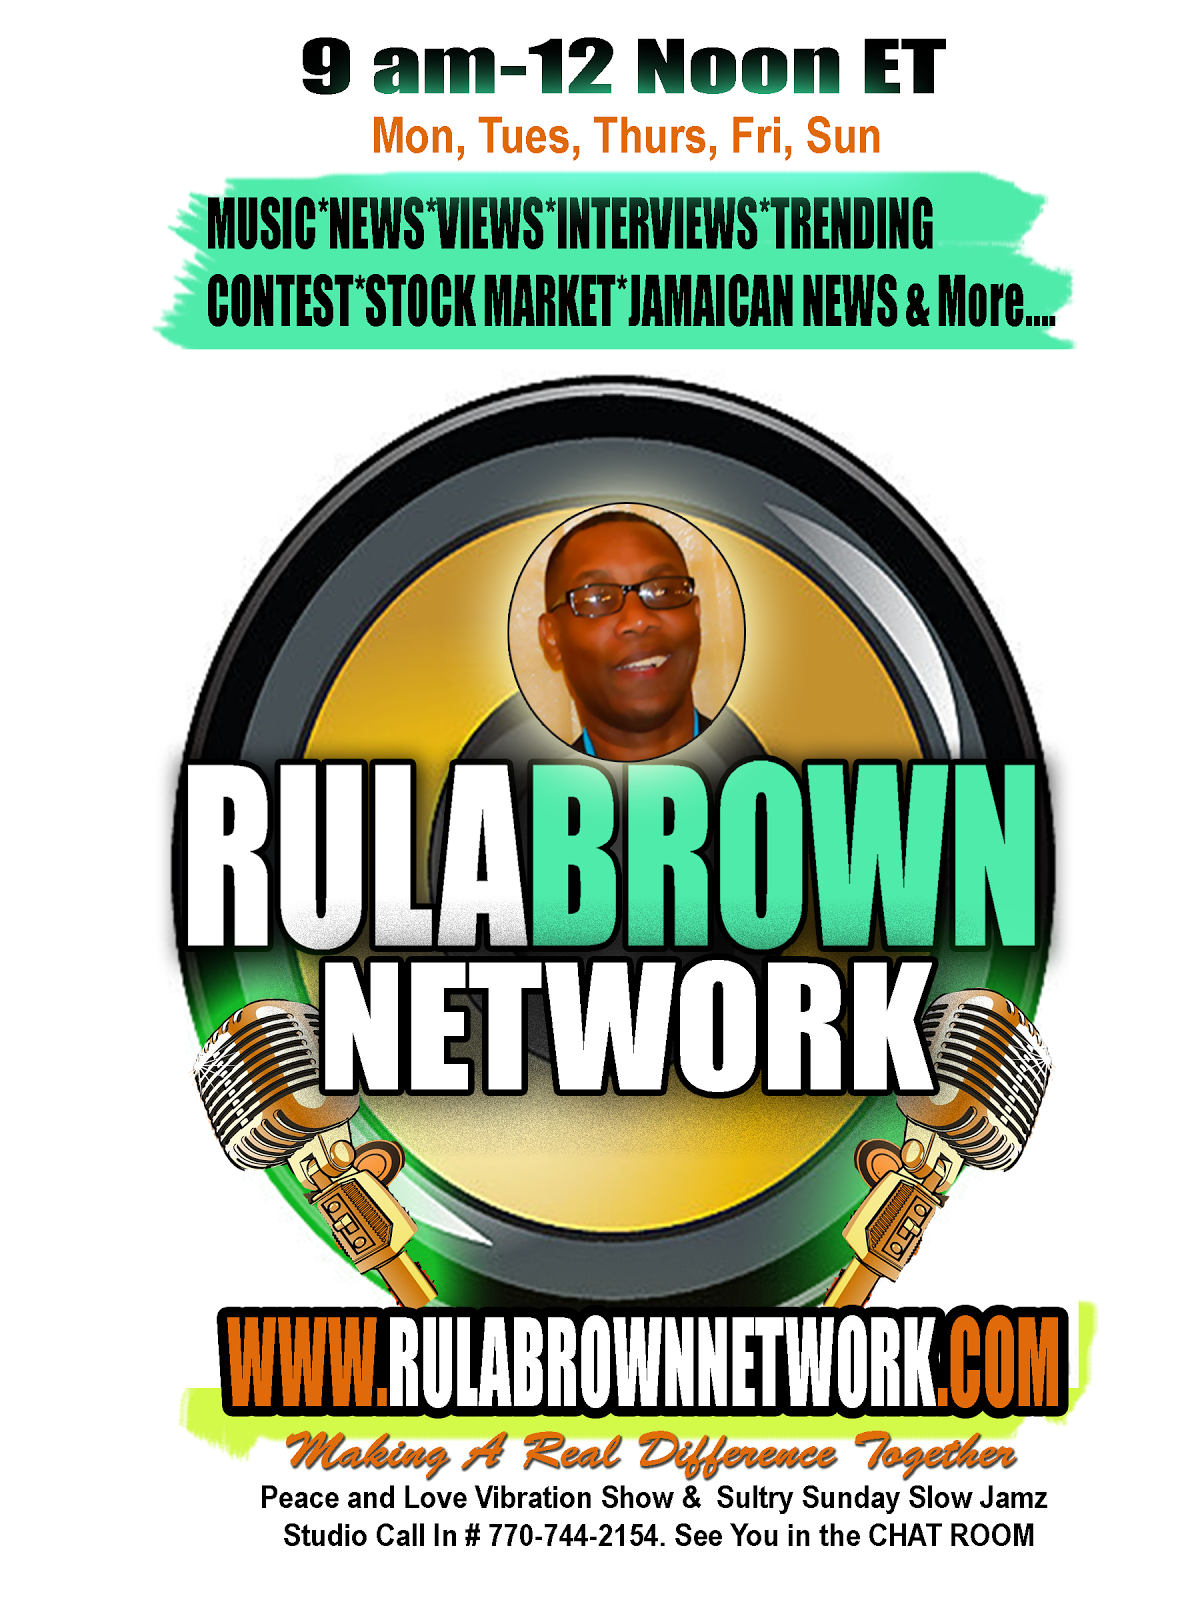 RulaBrownNetwork (RBN)